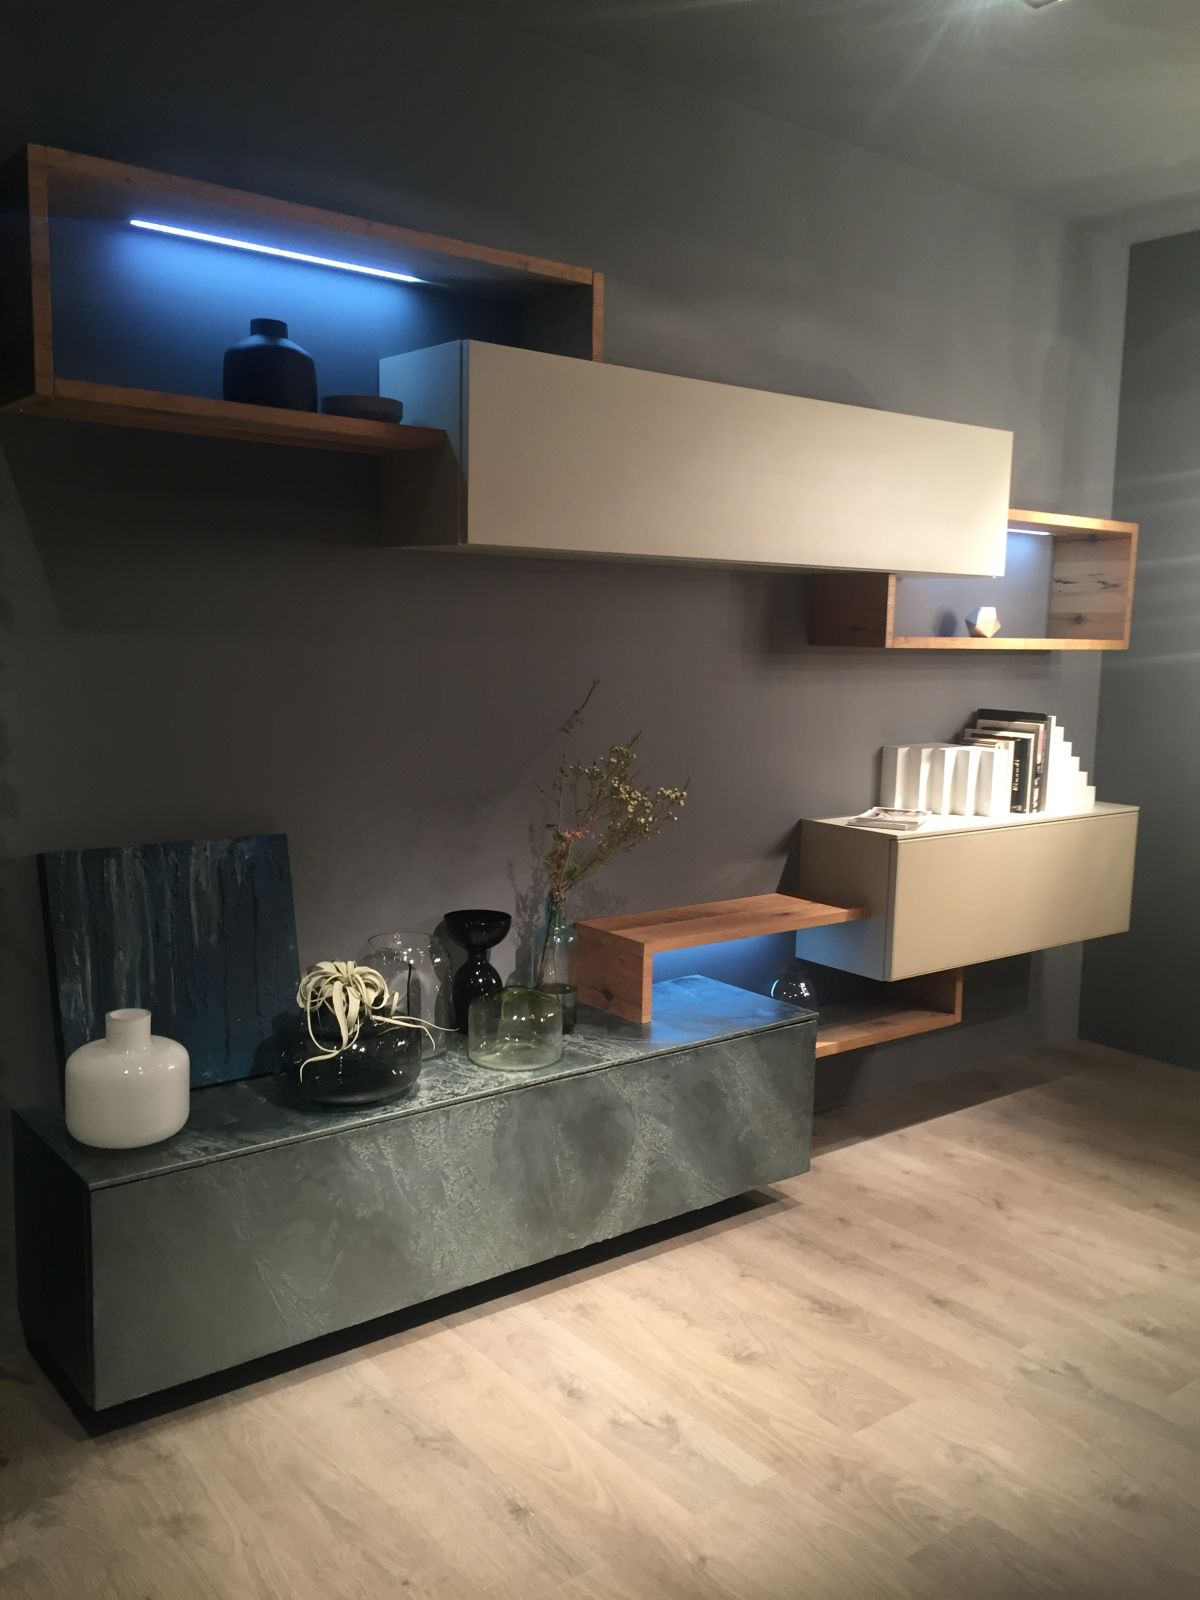 Shelves with light and consoles for media u